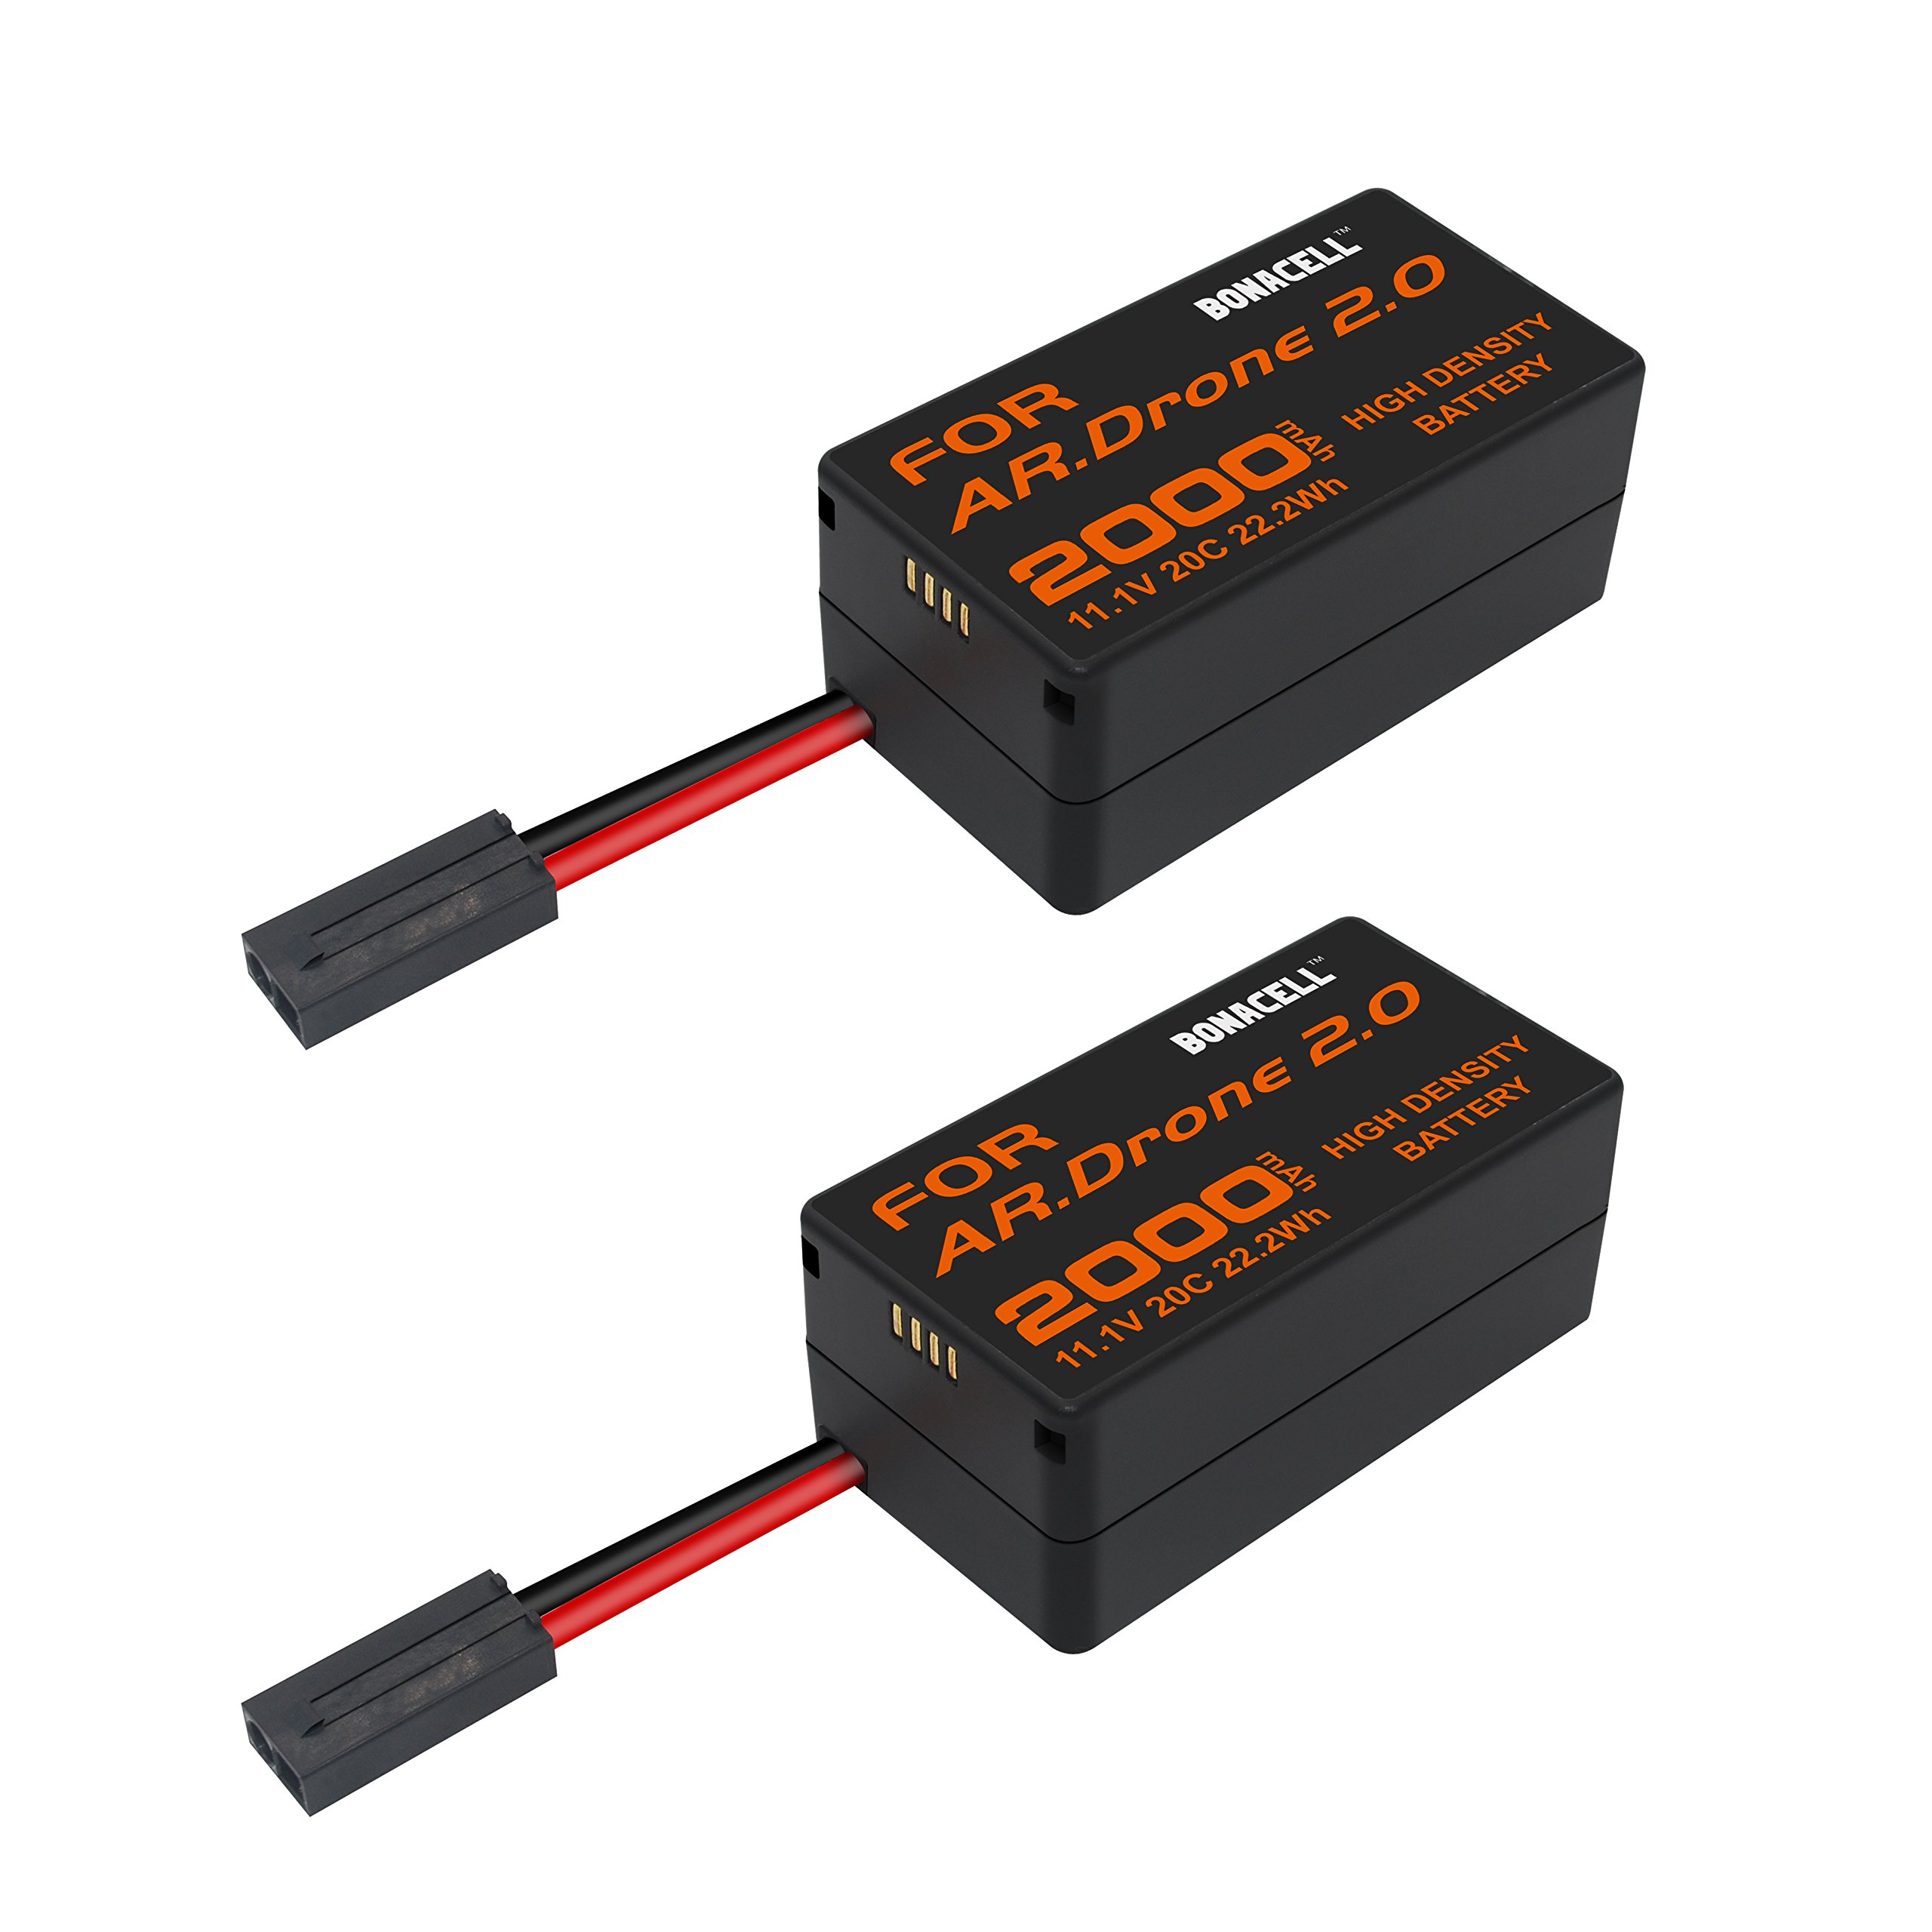 Bonacell 2 Pack Upgraded 2000mAh Lithium-Polymer Replacement Battery for Parrot AR.Drone 2.0